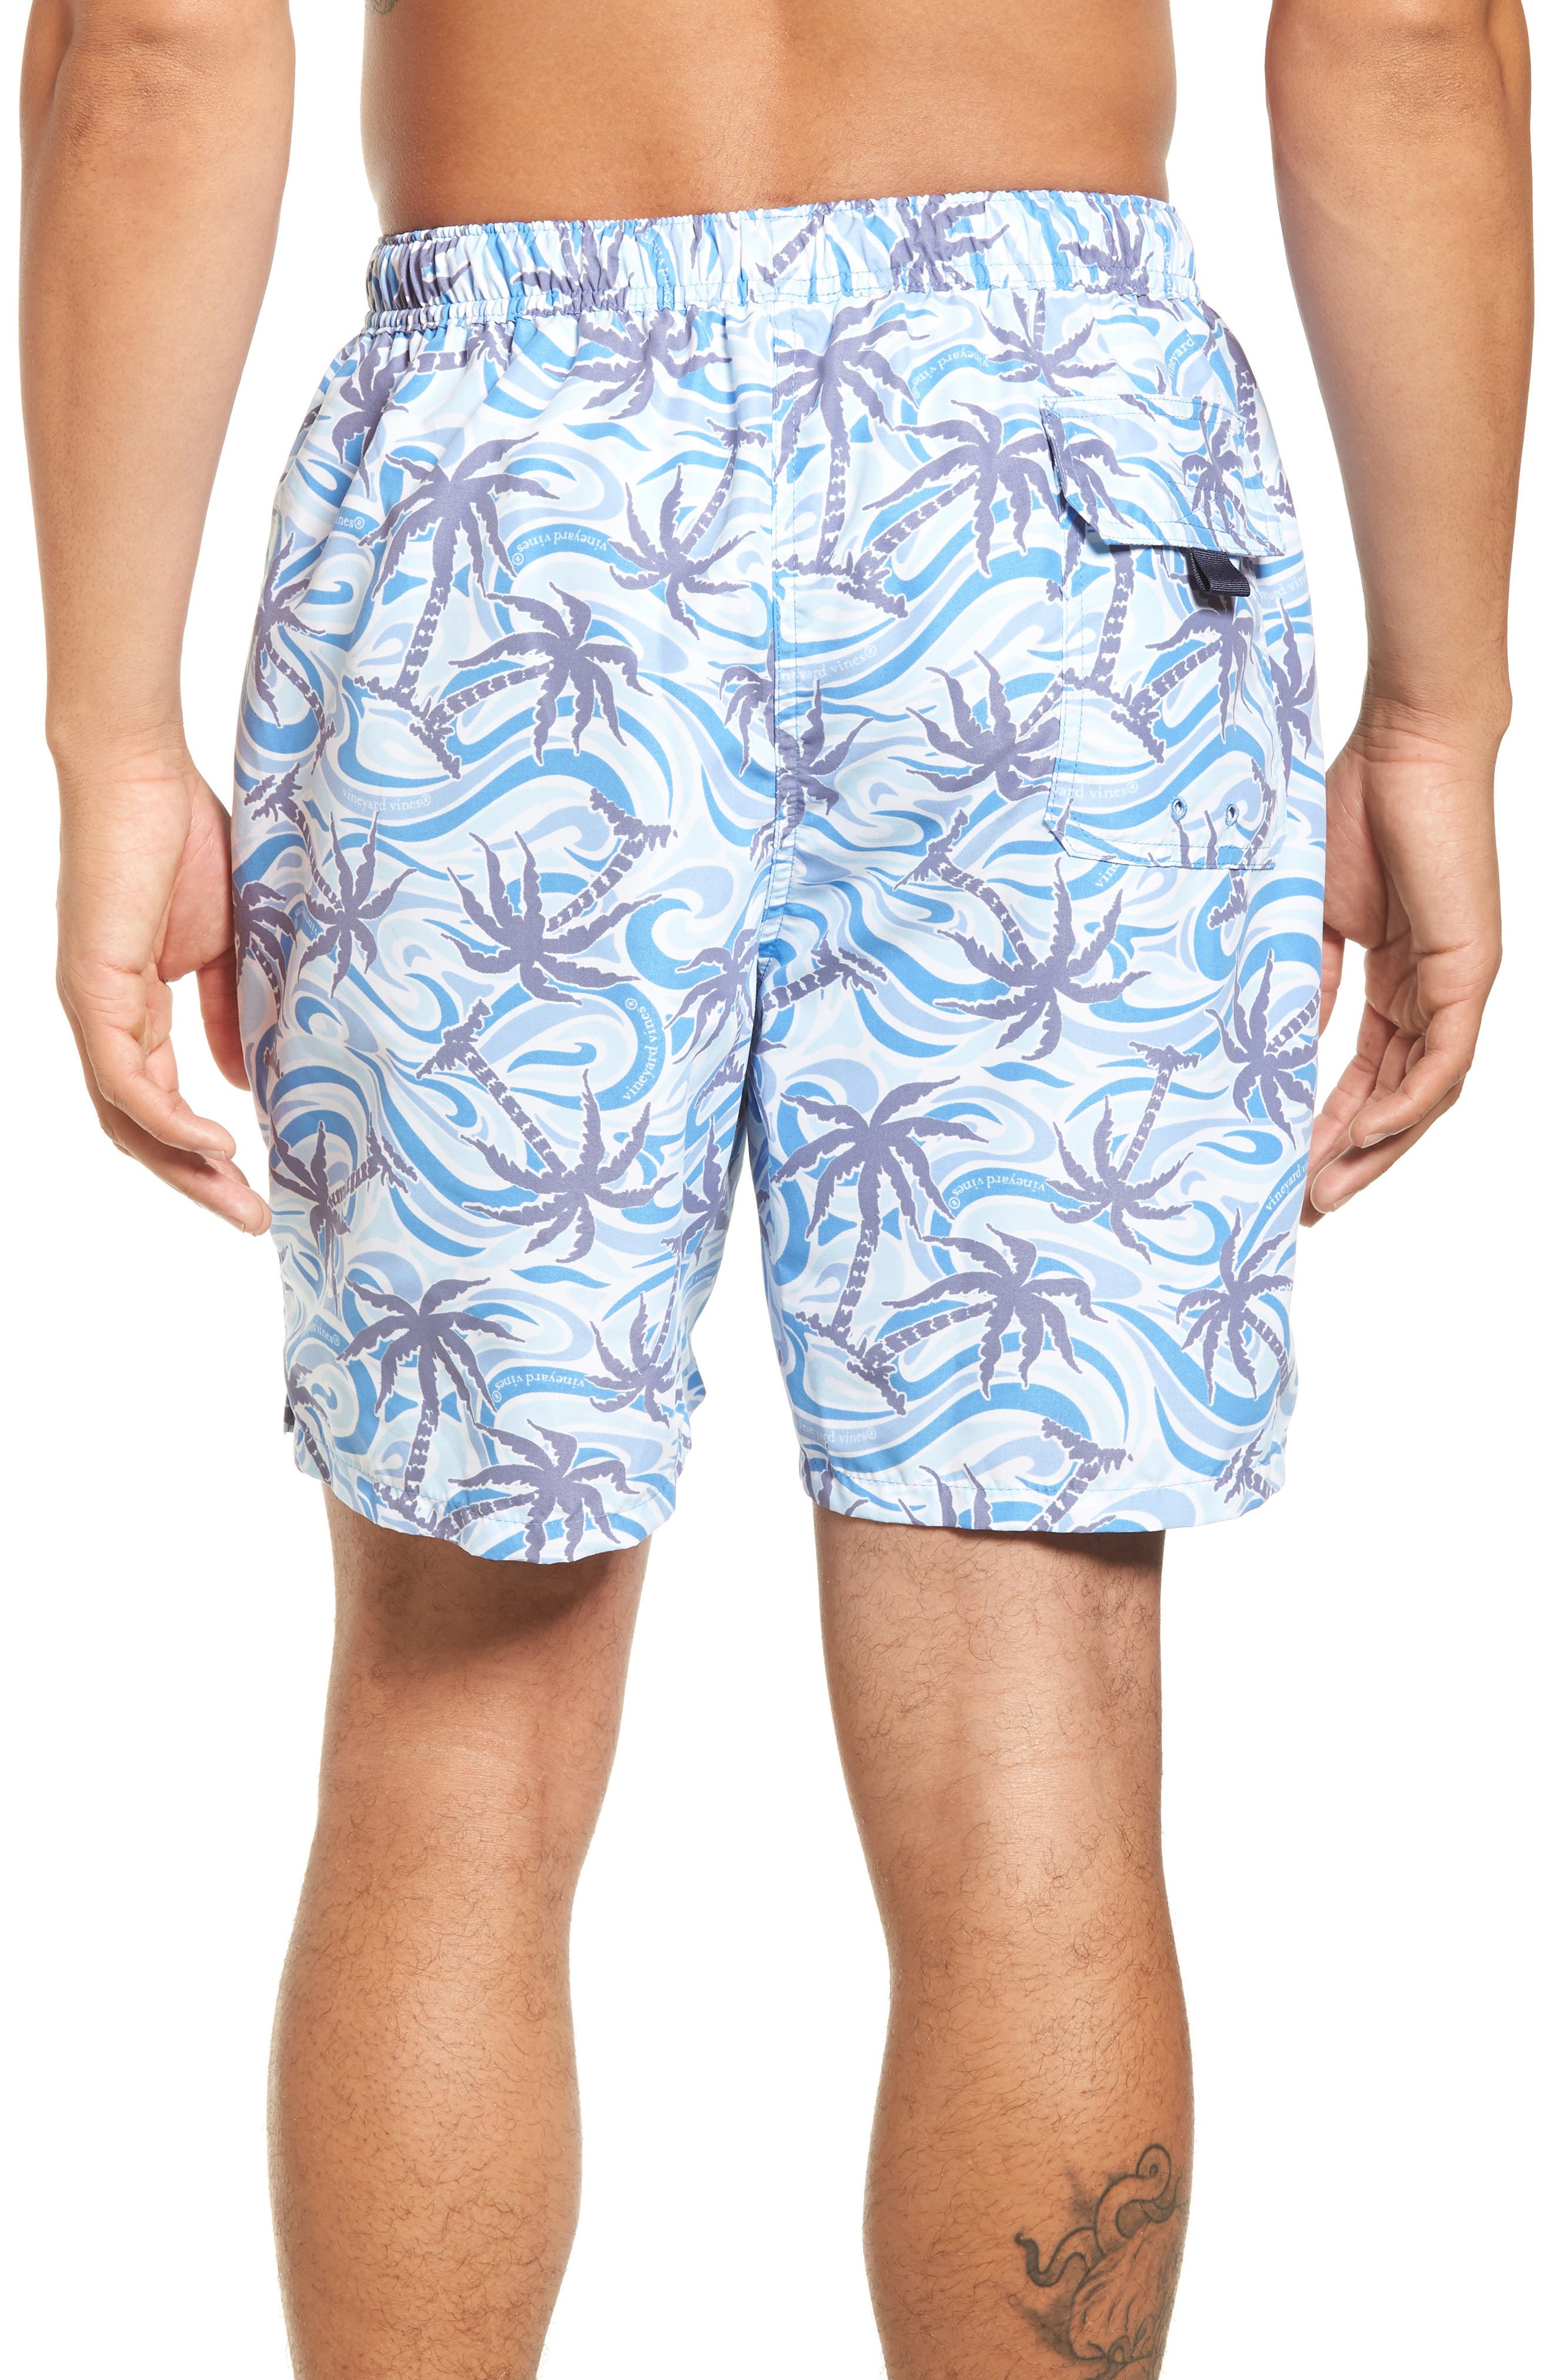 Chappy Wave Palm Tree Swim Trunks,                             Alternate thumbnail 2, color,                             456